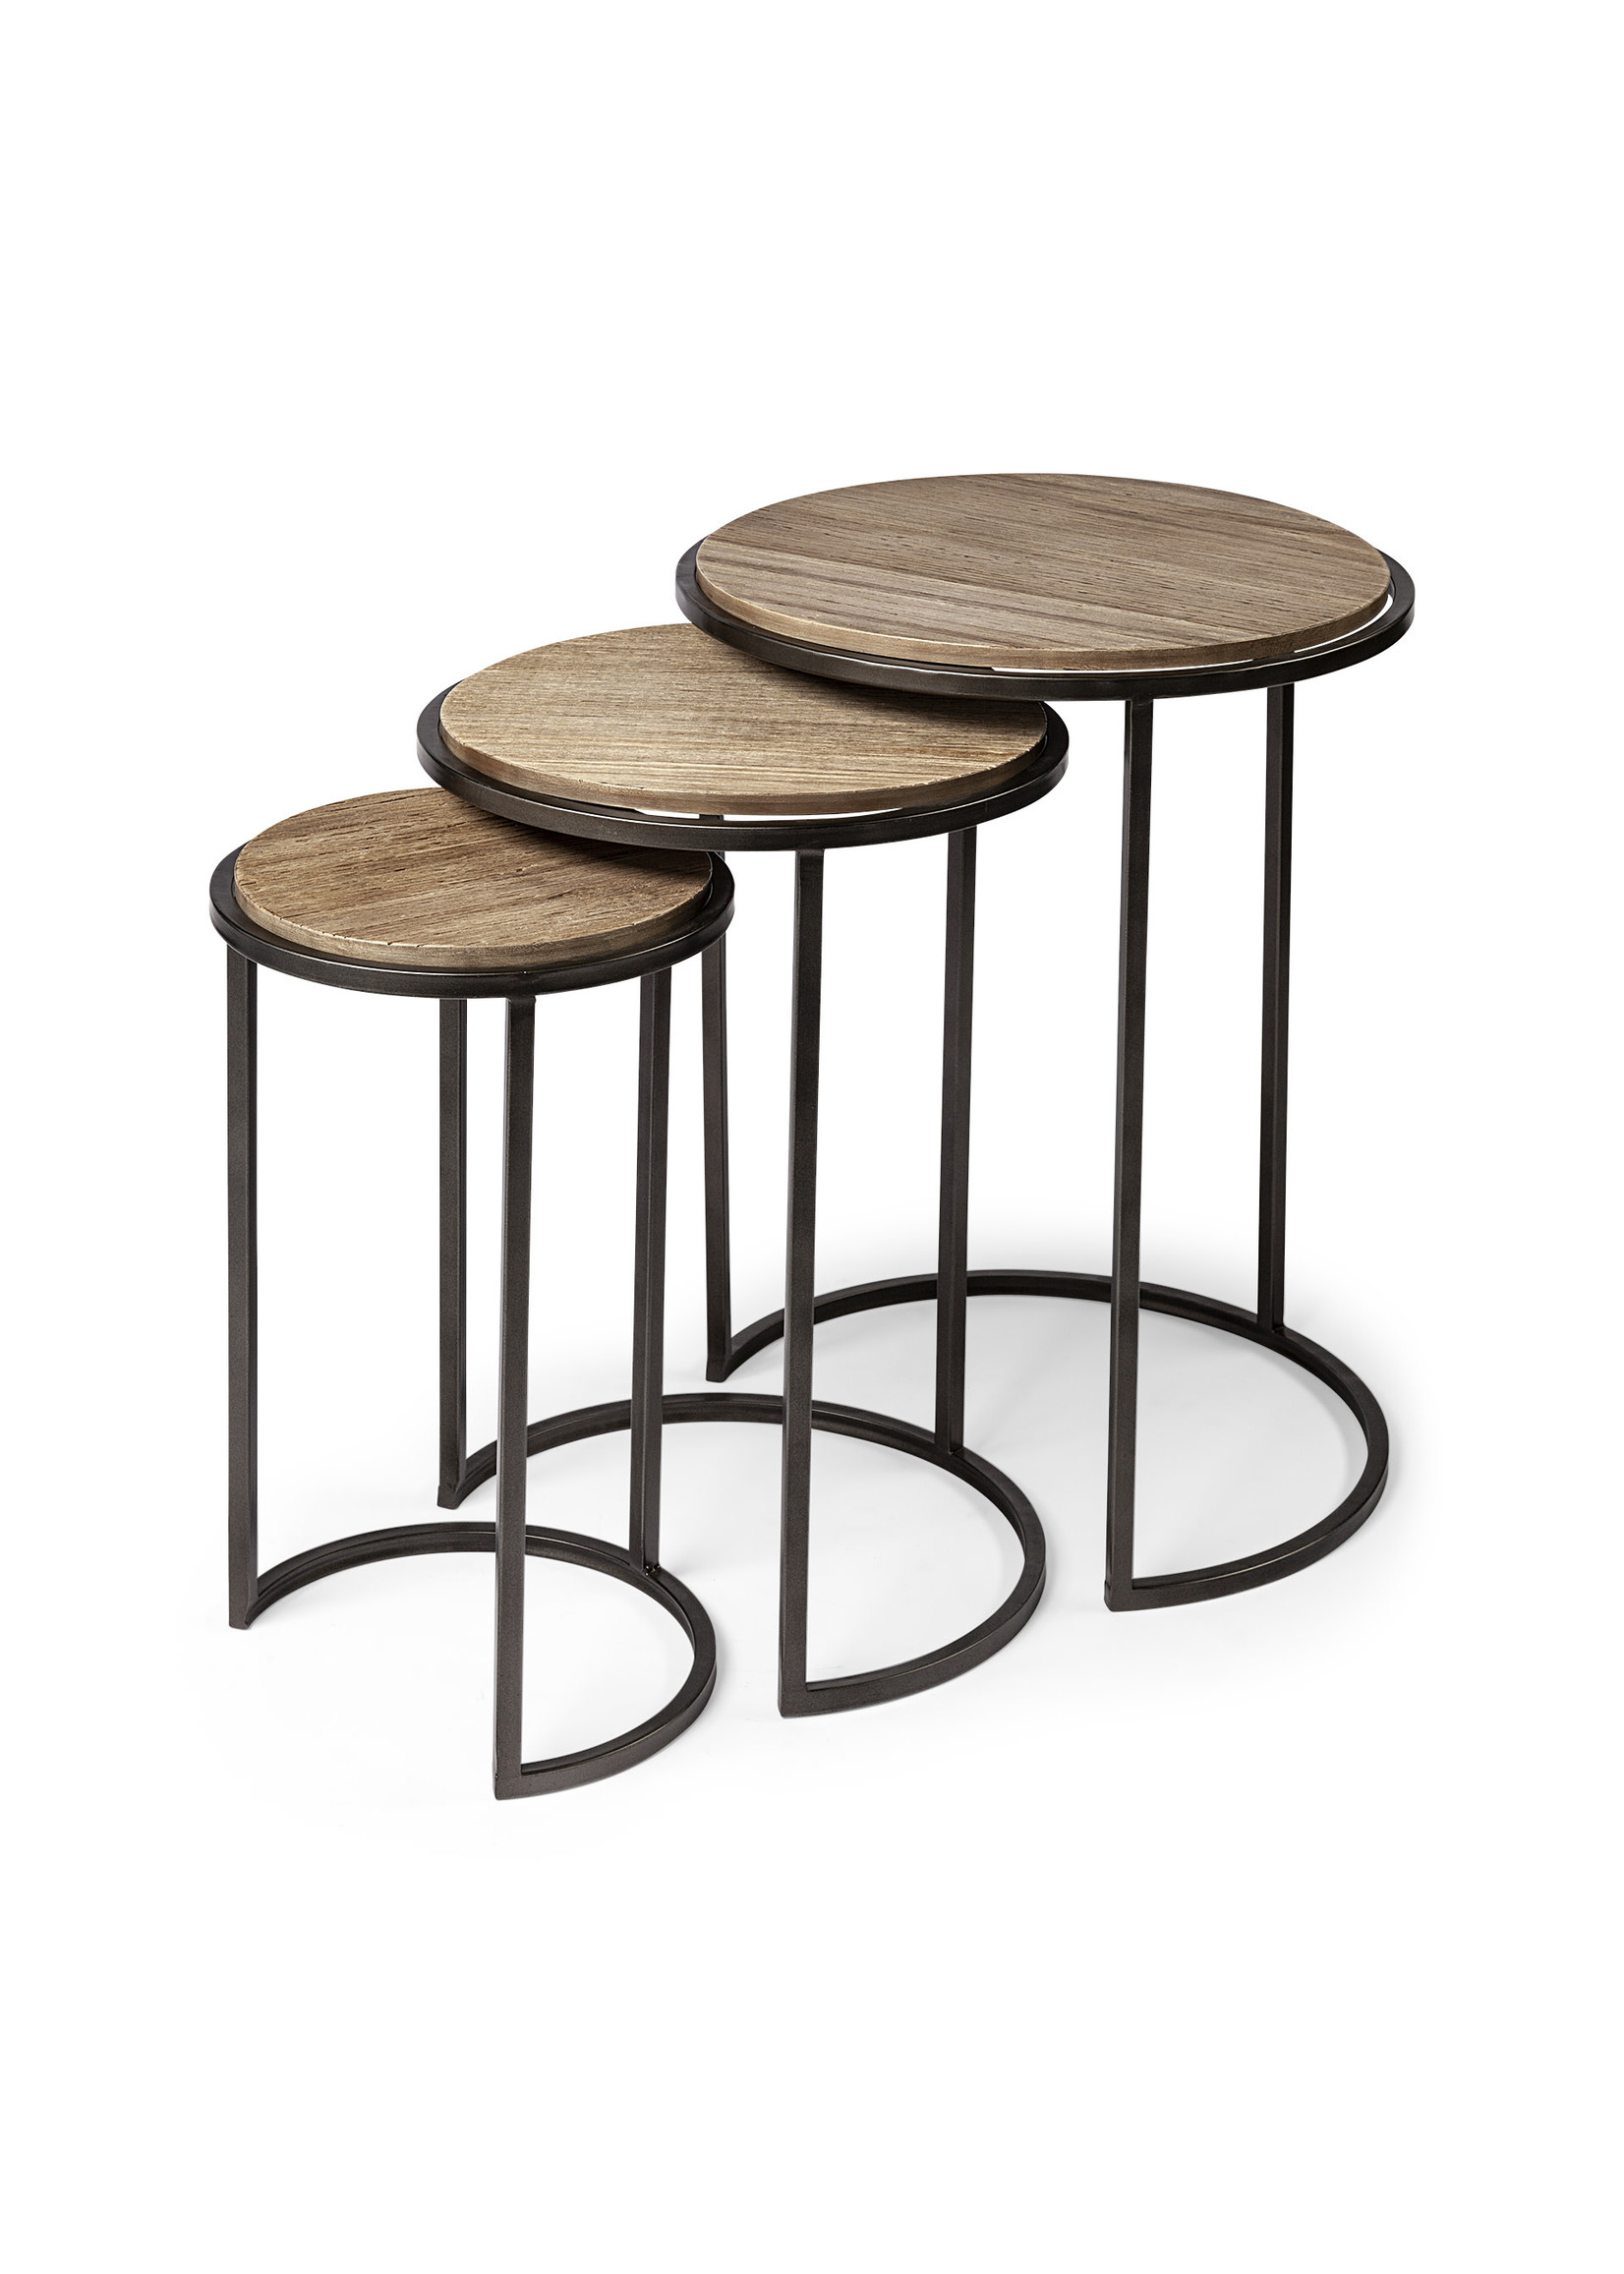 S/3 NESTING TABLES